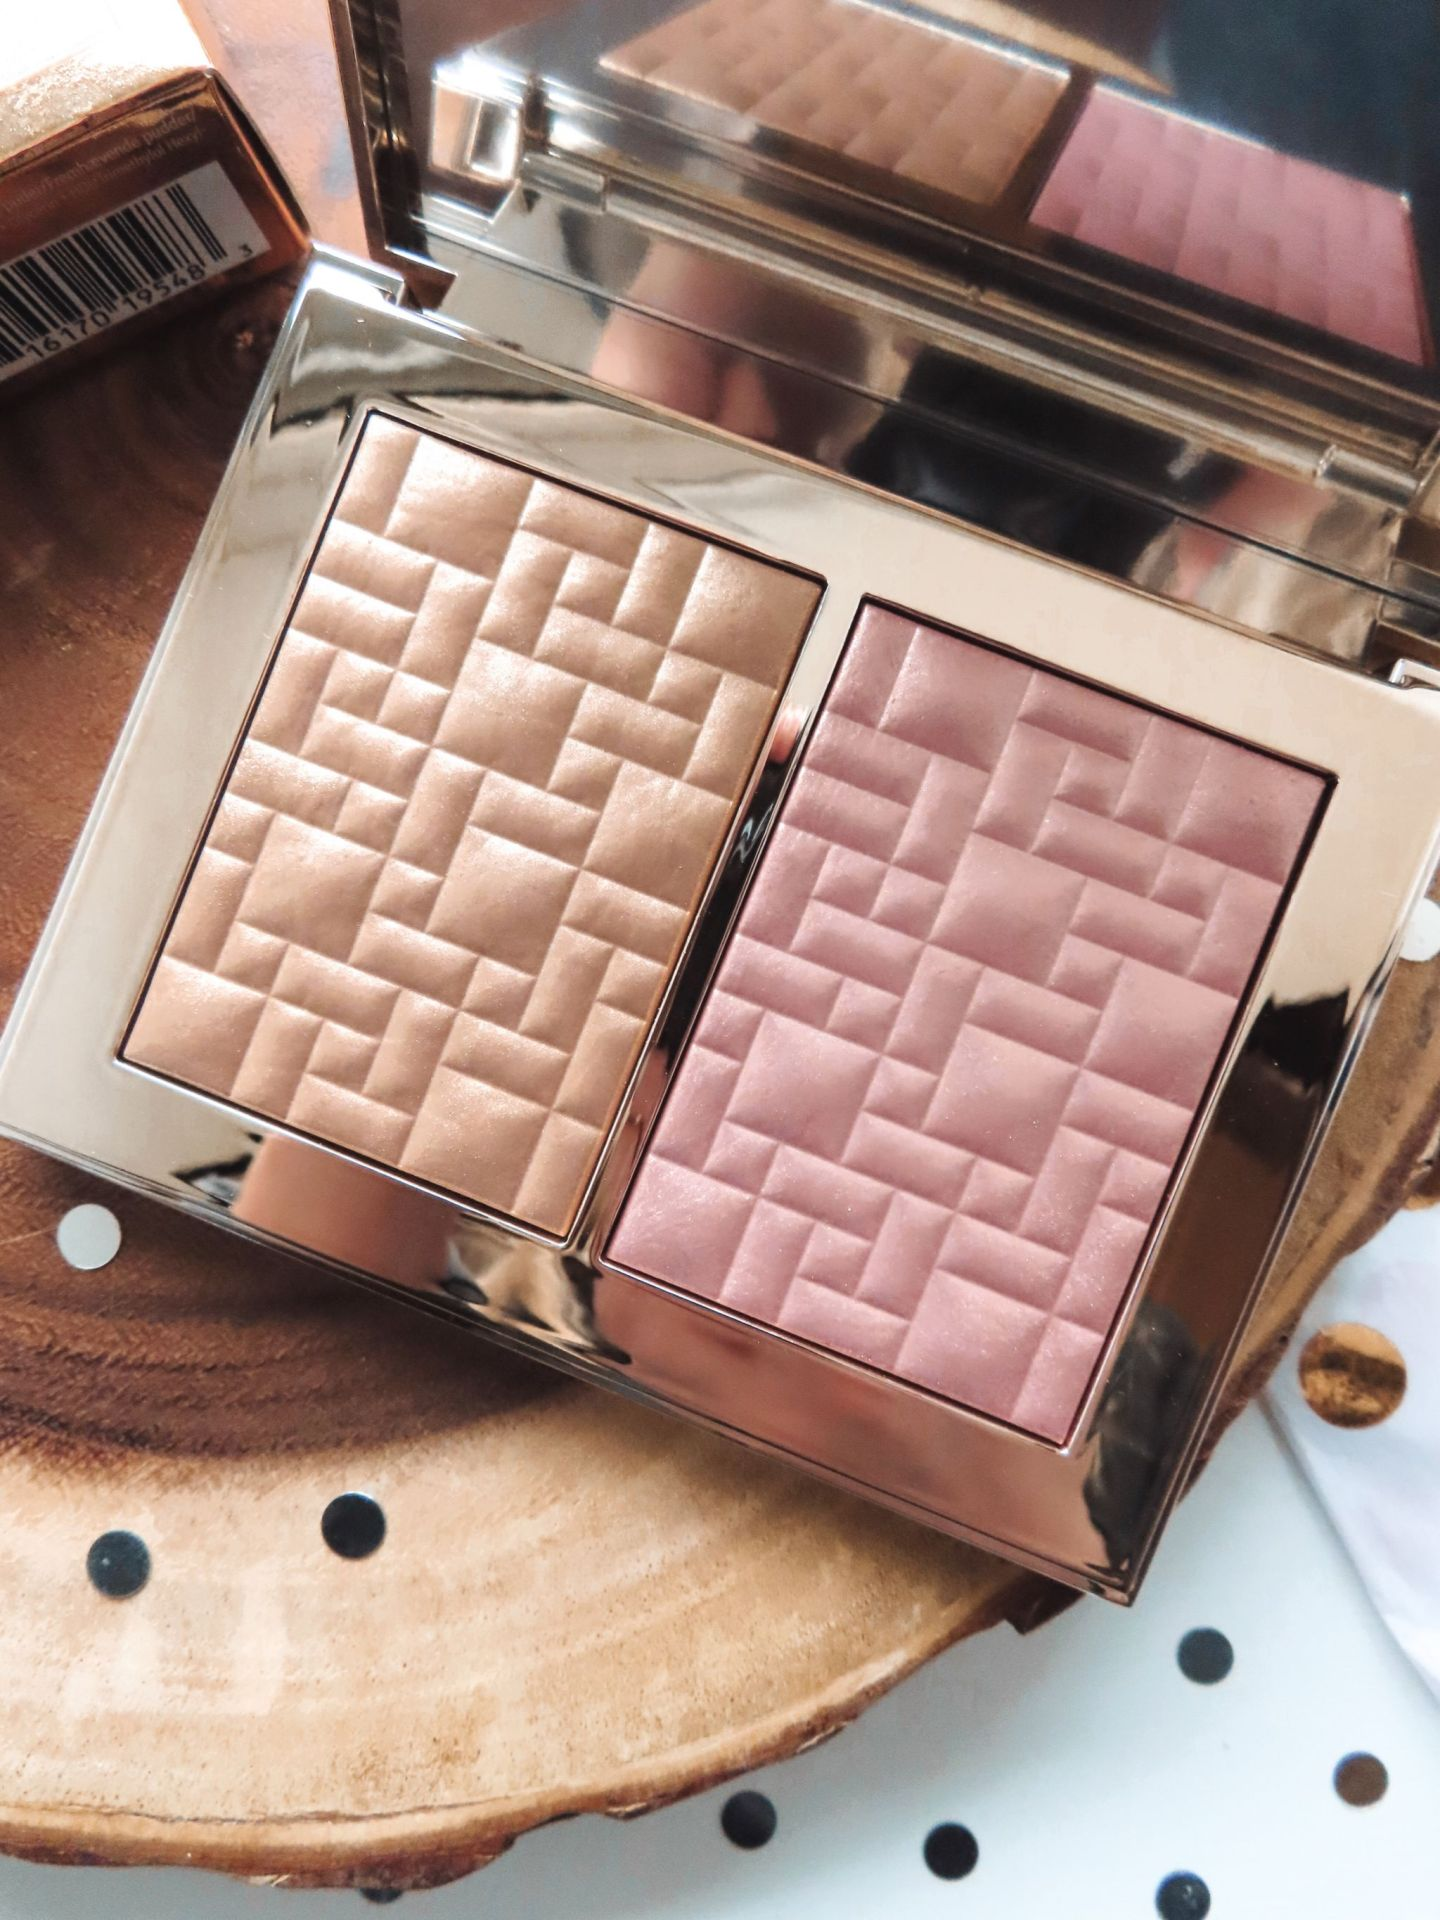 Highlight and Glow Palette